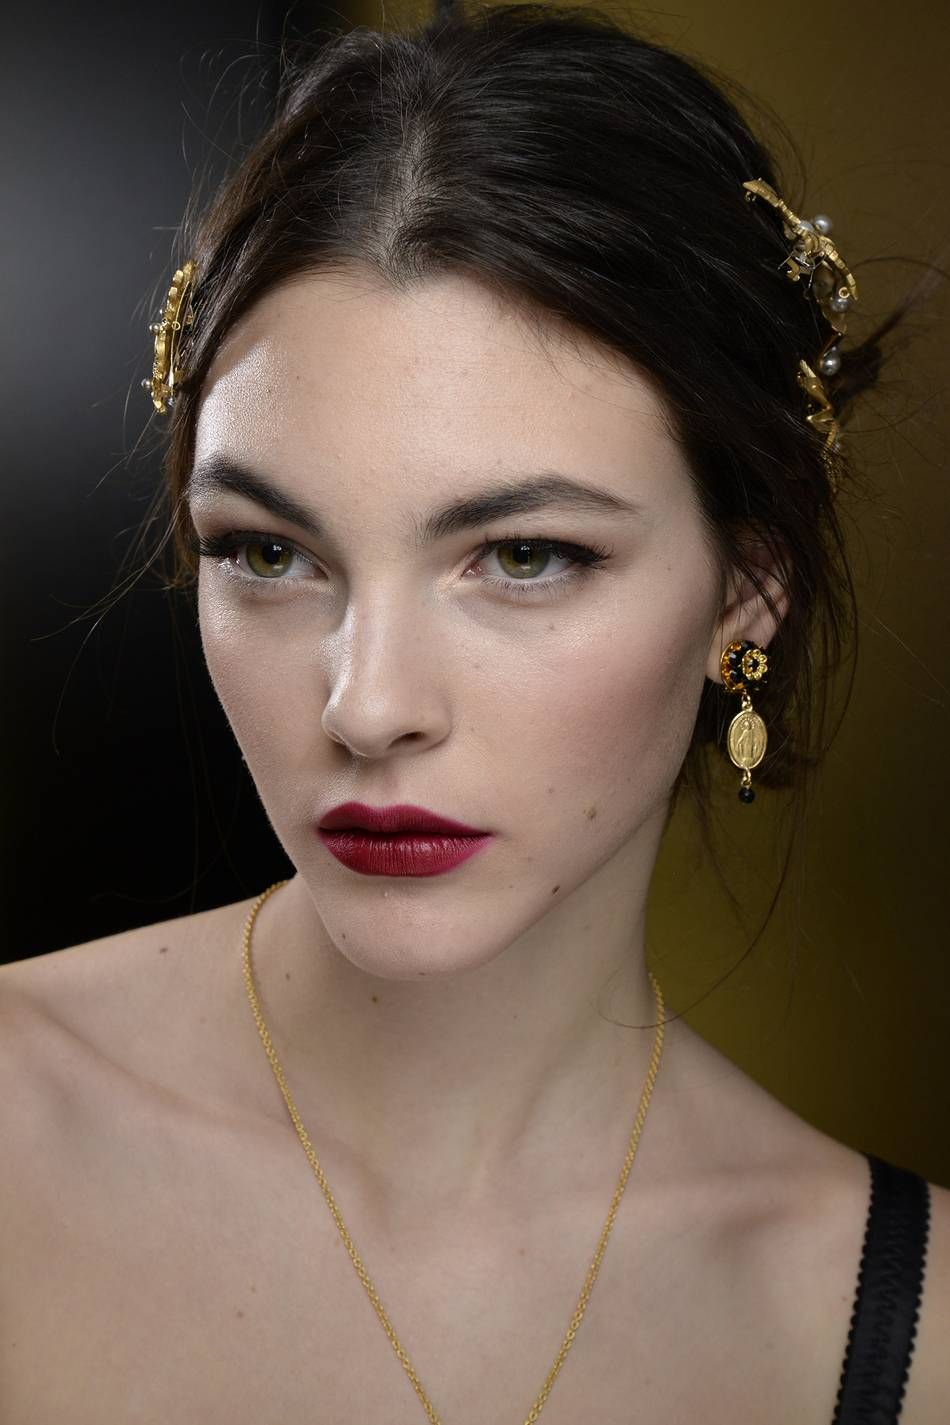 8bad3c20972df Dolce Gabbana  The Italian label s new make-up collection is inspired by  its Fall Winter 2015 2016 catwalk presentation